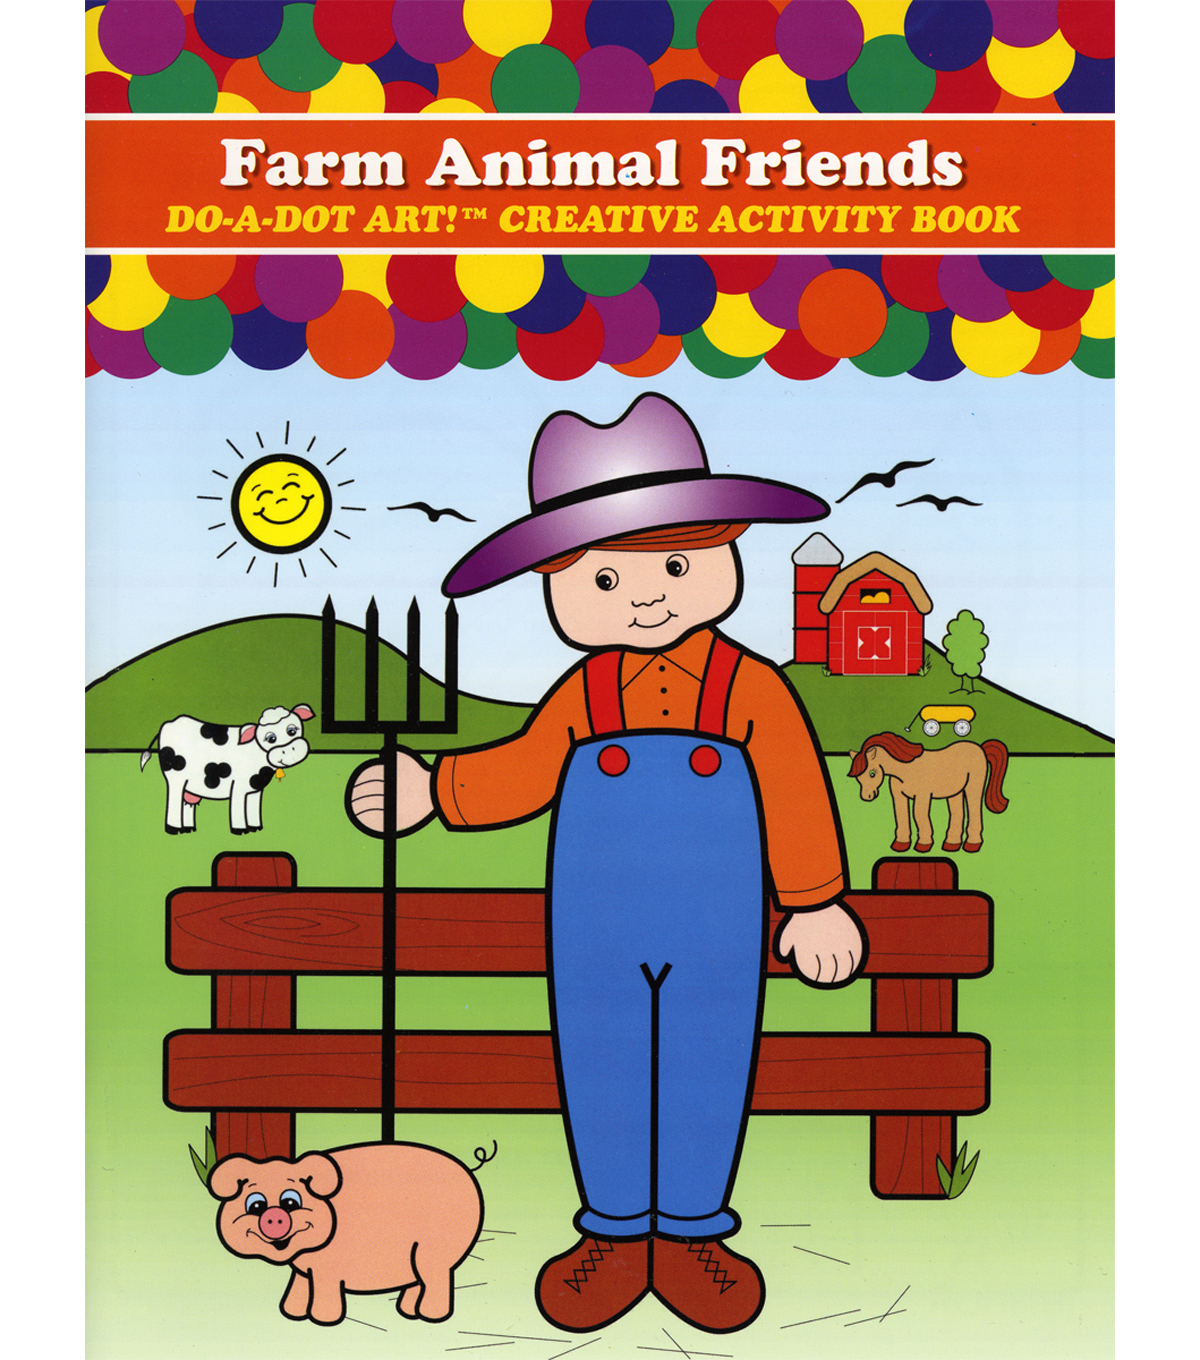 Do-A-Dot Activity Book-Farm Animals Friends